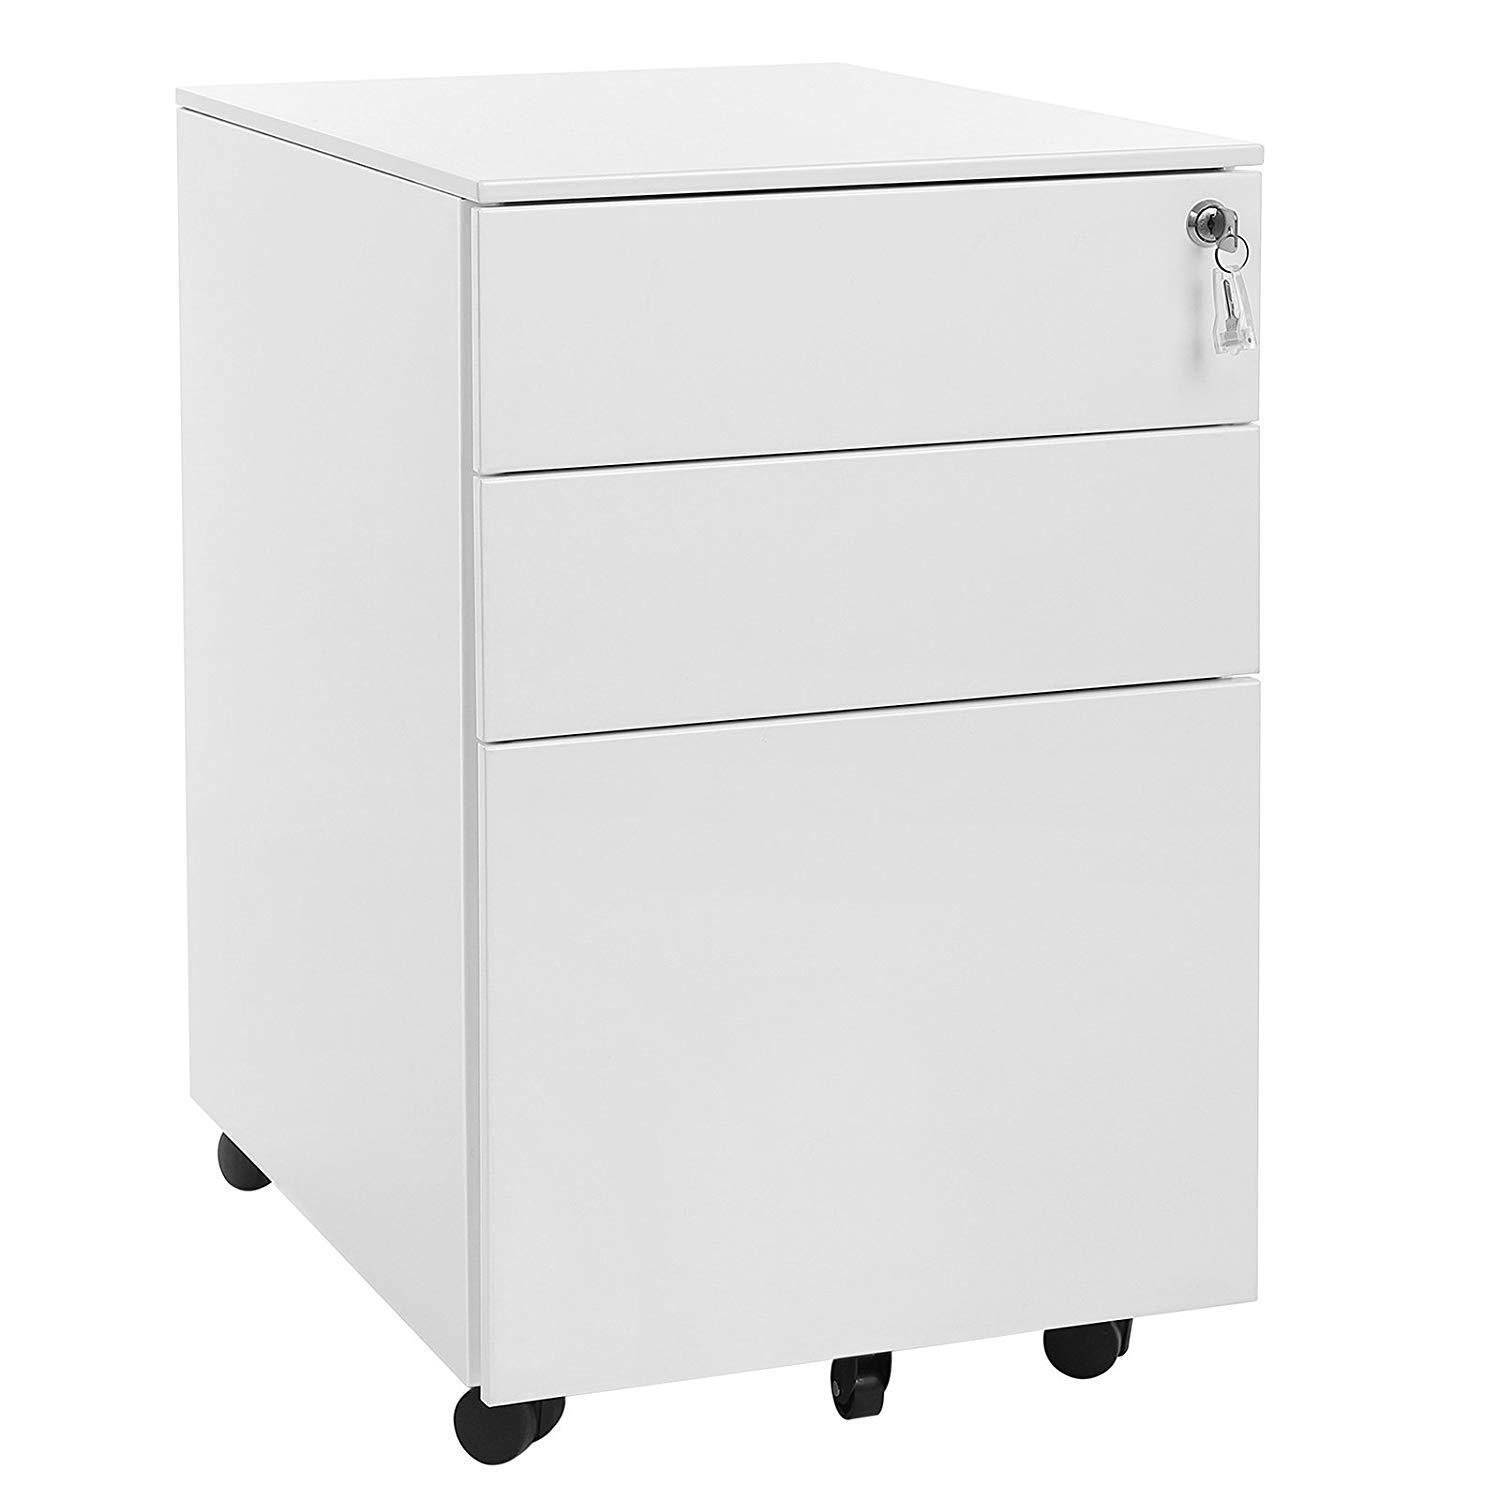 3 Drawer Metal Mobile File Cabinet with Lock Fully Assembled Except Casters (White) by Bartfort